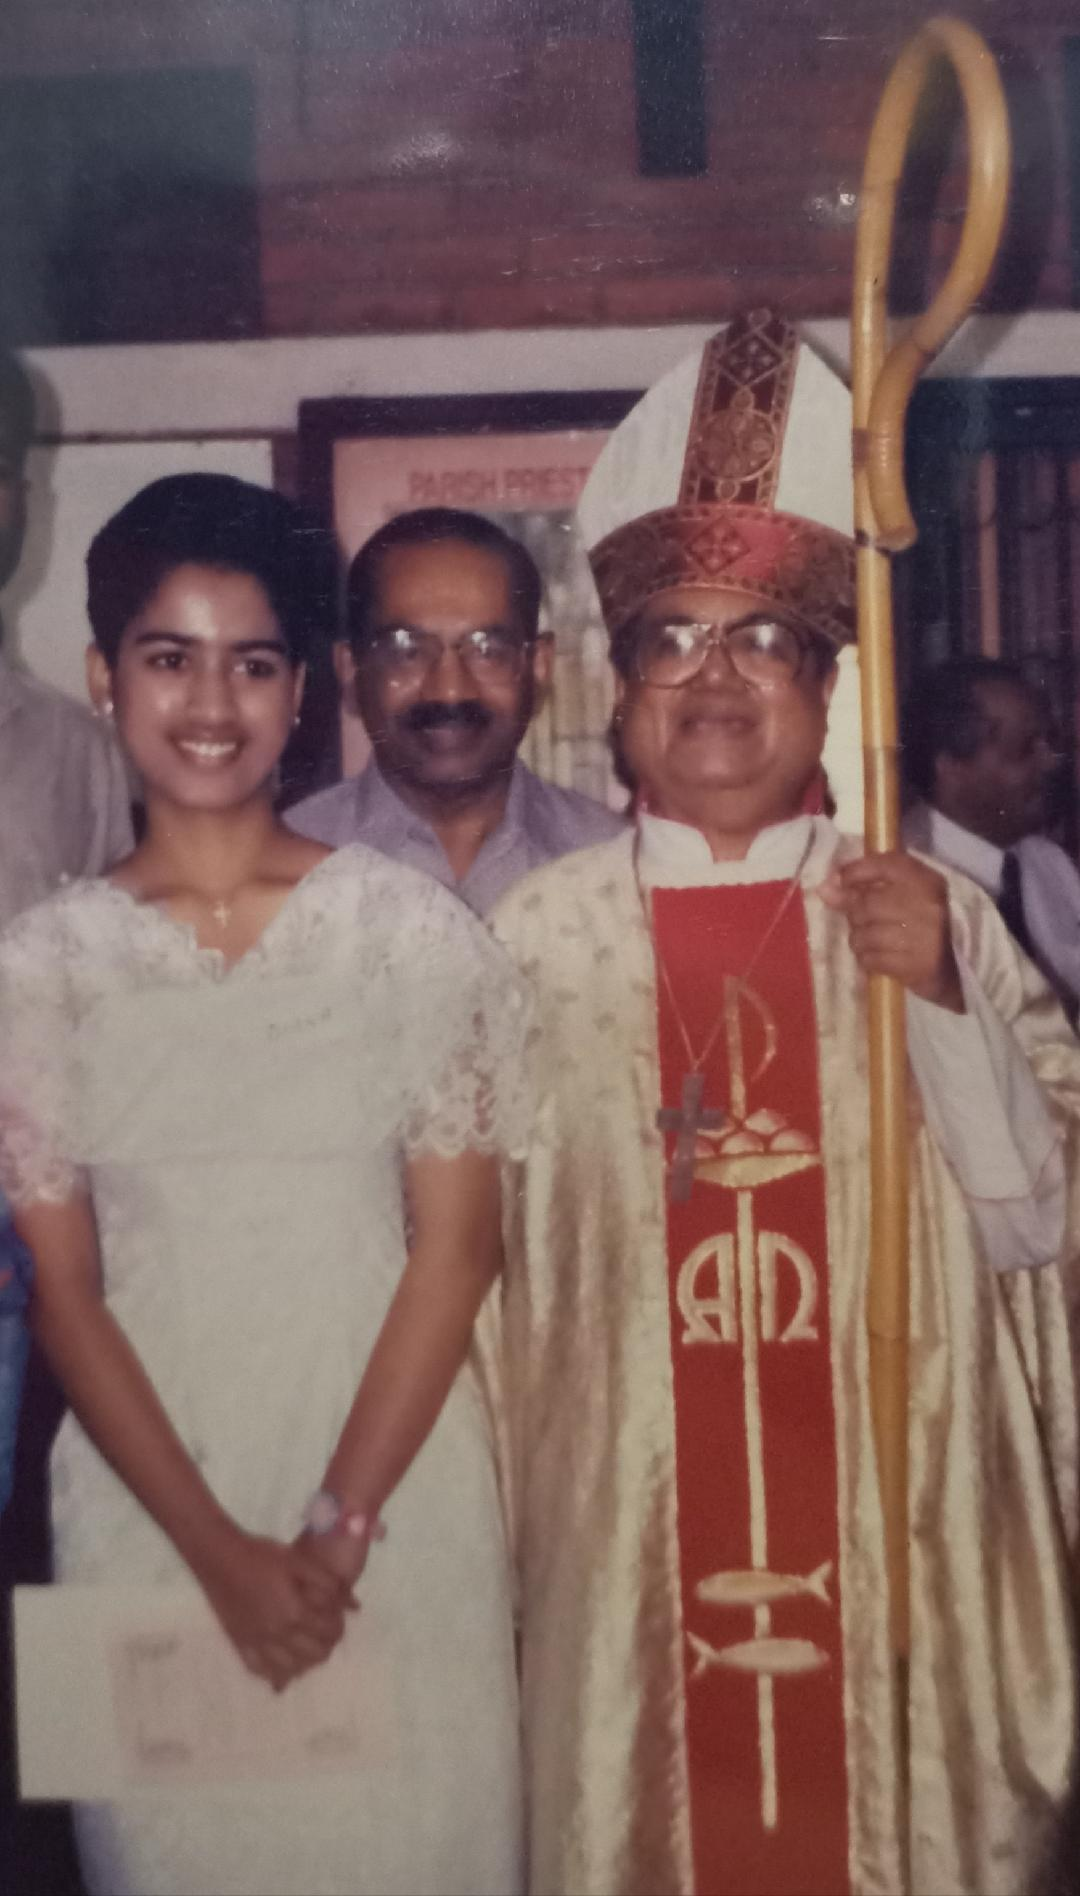 Taken on my Sacrament of Confirmation in 1999, with the most humble and down to earth Bishop, His Eminence Cardinal Soter Fernandez together with my late dad. This photo is now 21 years old and it will be kept very close to my heart.